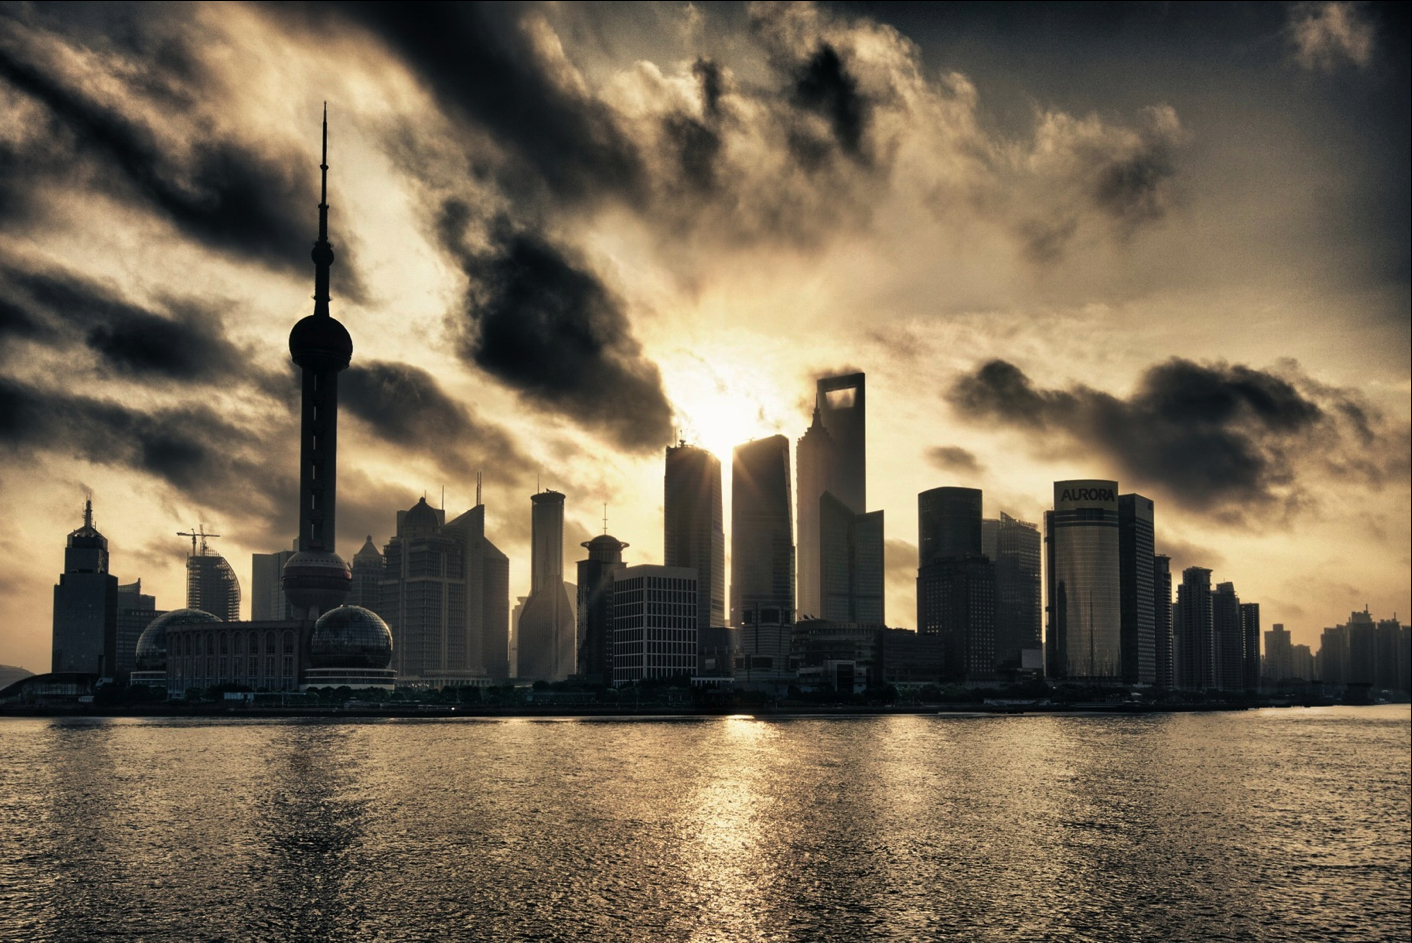 cityscapes China town Shanghai HD Wallpaper